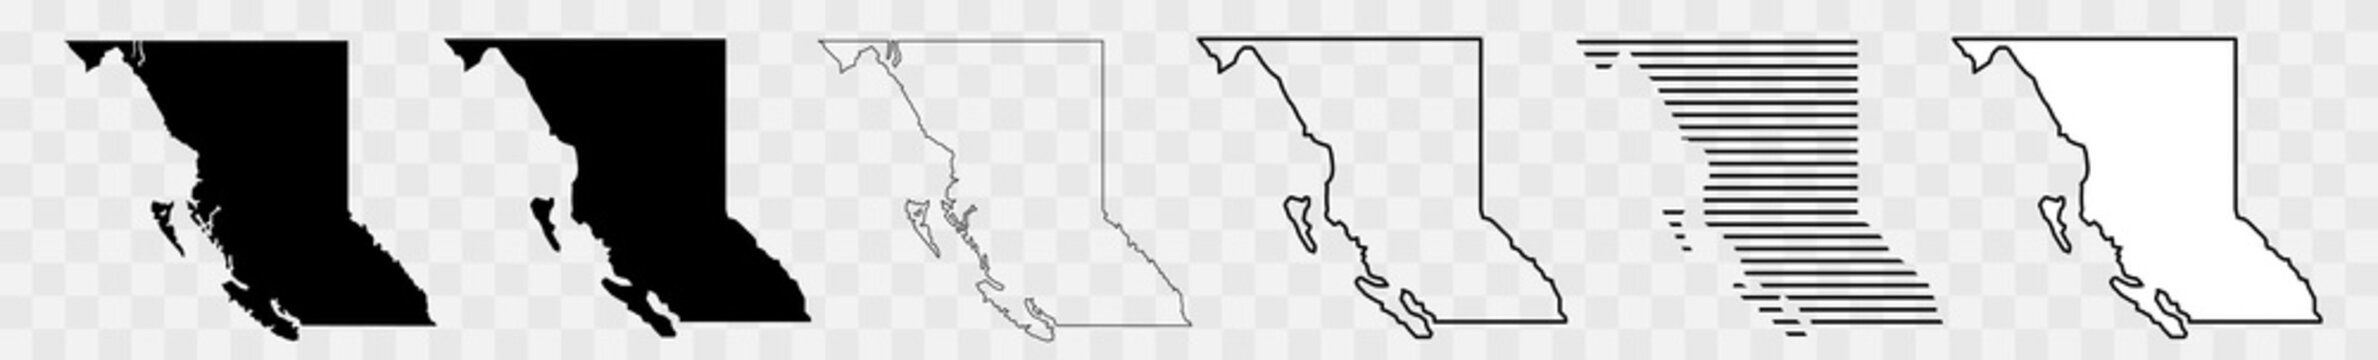 British Columbia Map Black | Province Border | Canada State | Canadian | America | Transparent Isolated | Variations